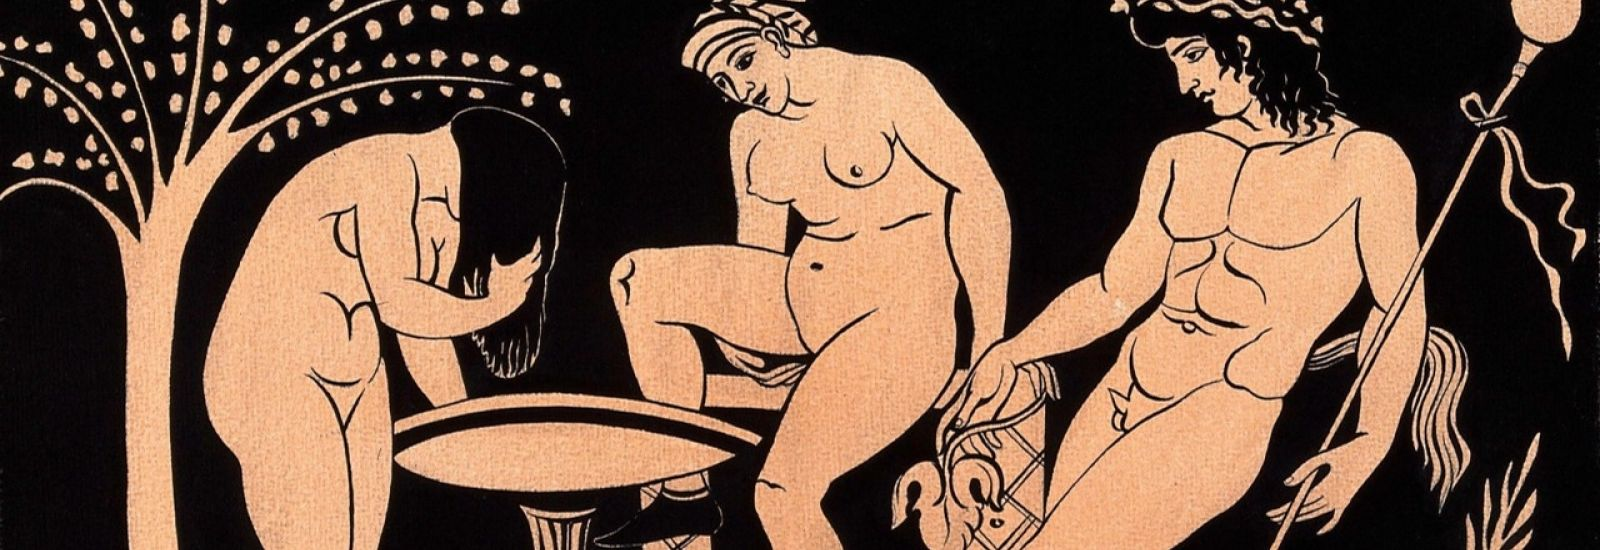 Painting of two women washing next to a satyr in pale gouache on black background